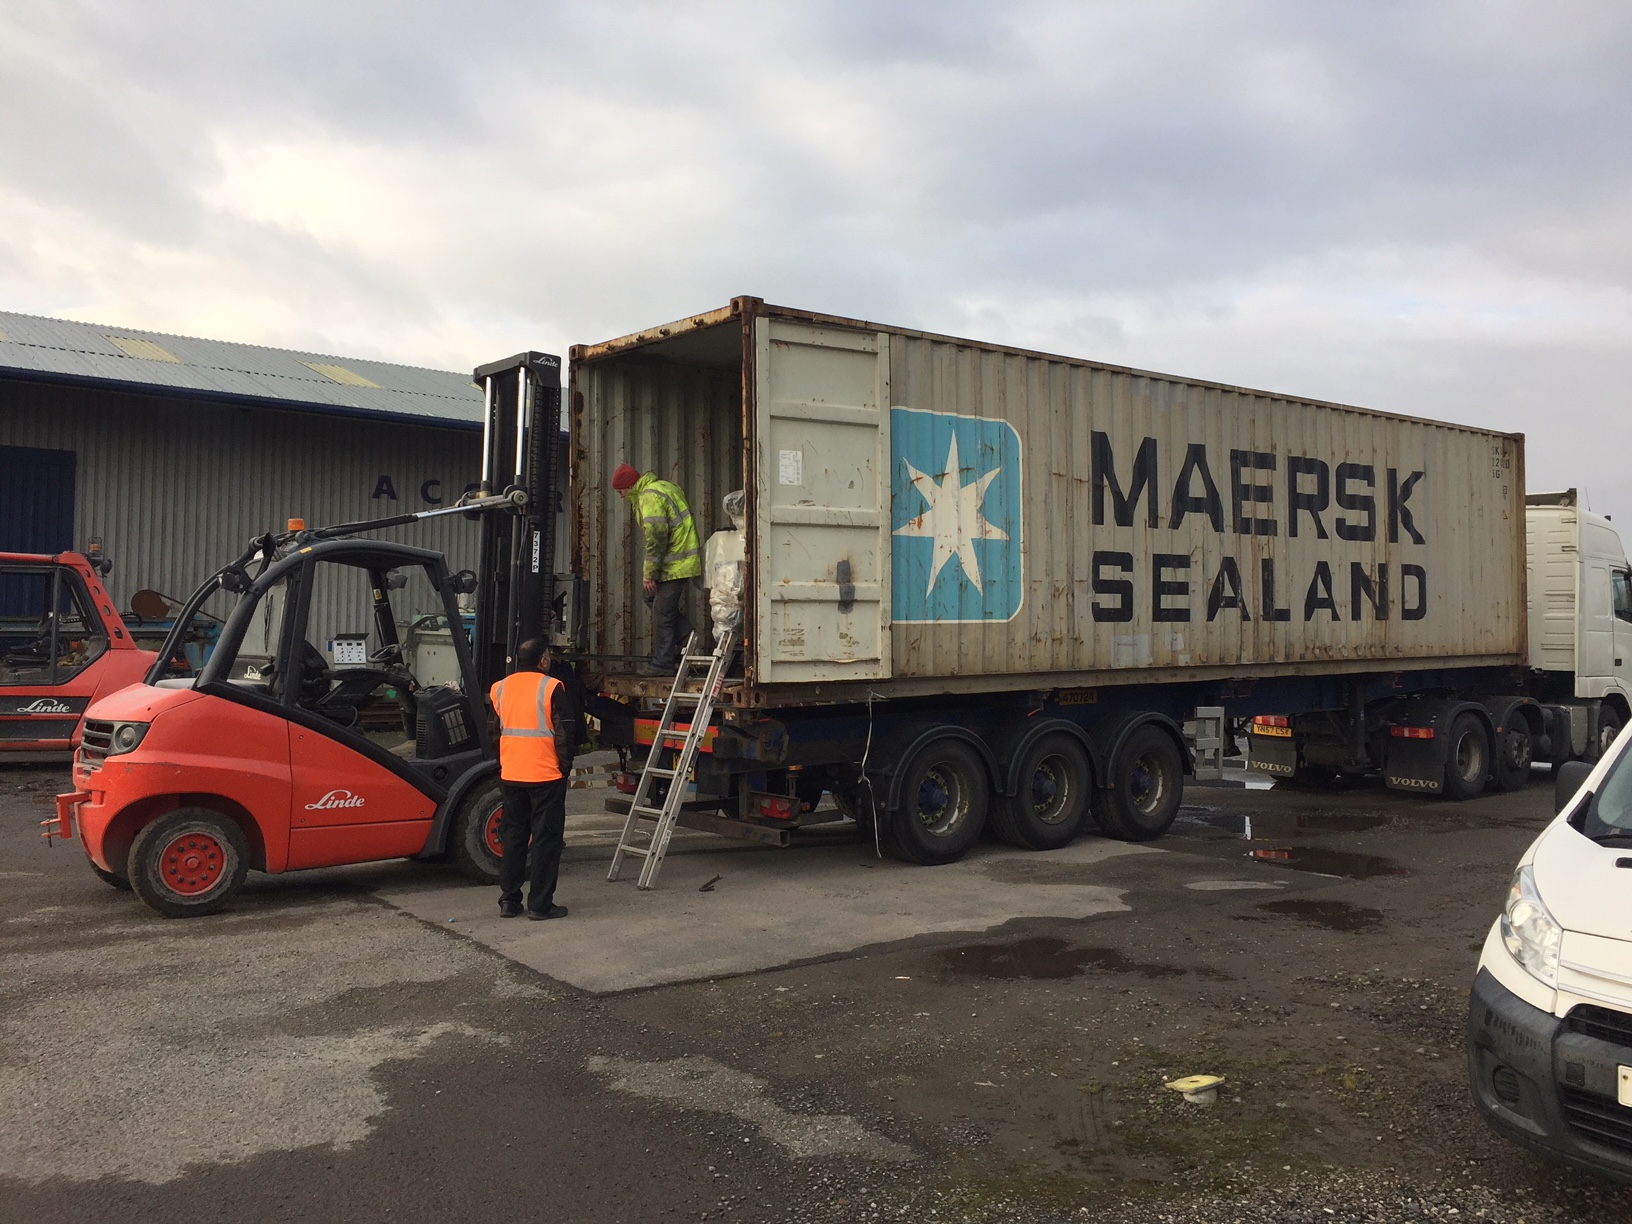 Arrival of new machinery